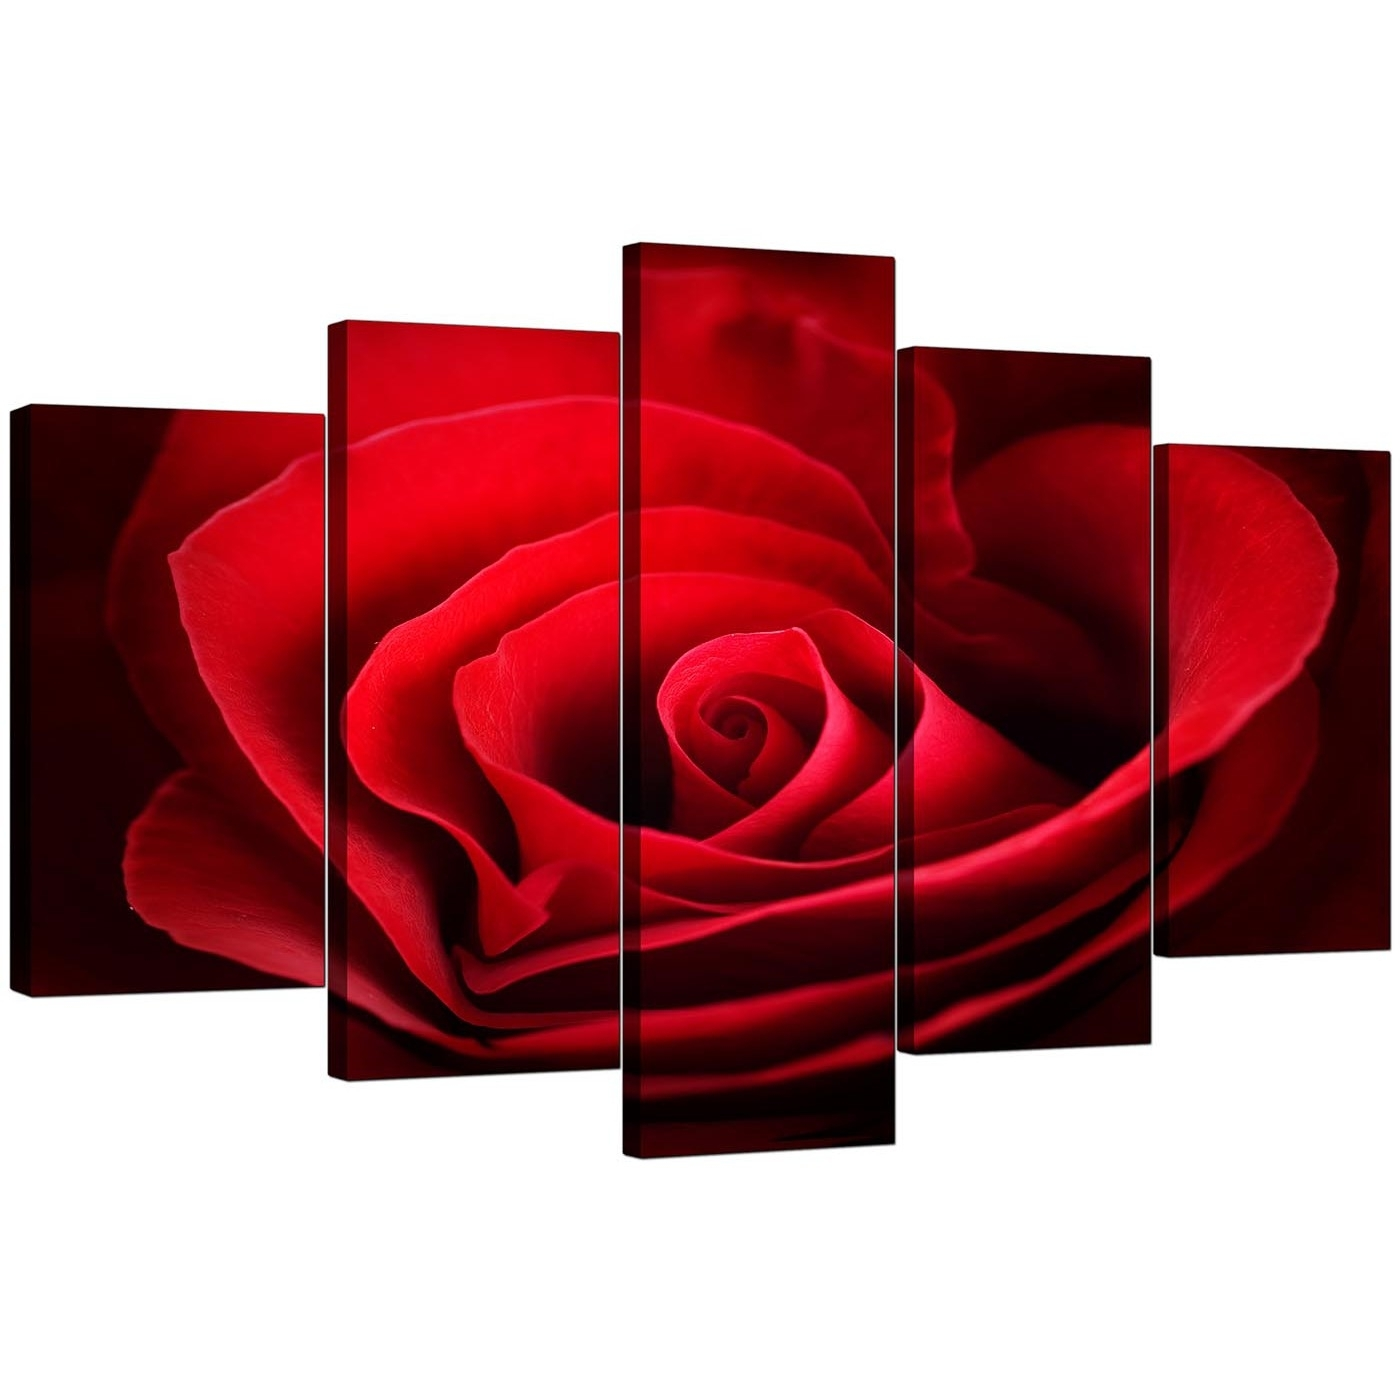 Extra Large Rose Canvas Wall Art 5 Panel In Red Throughout Most Popular Red Wall Art (View 8 of 15)